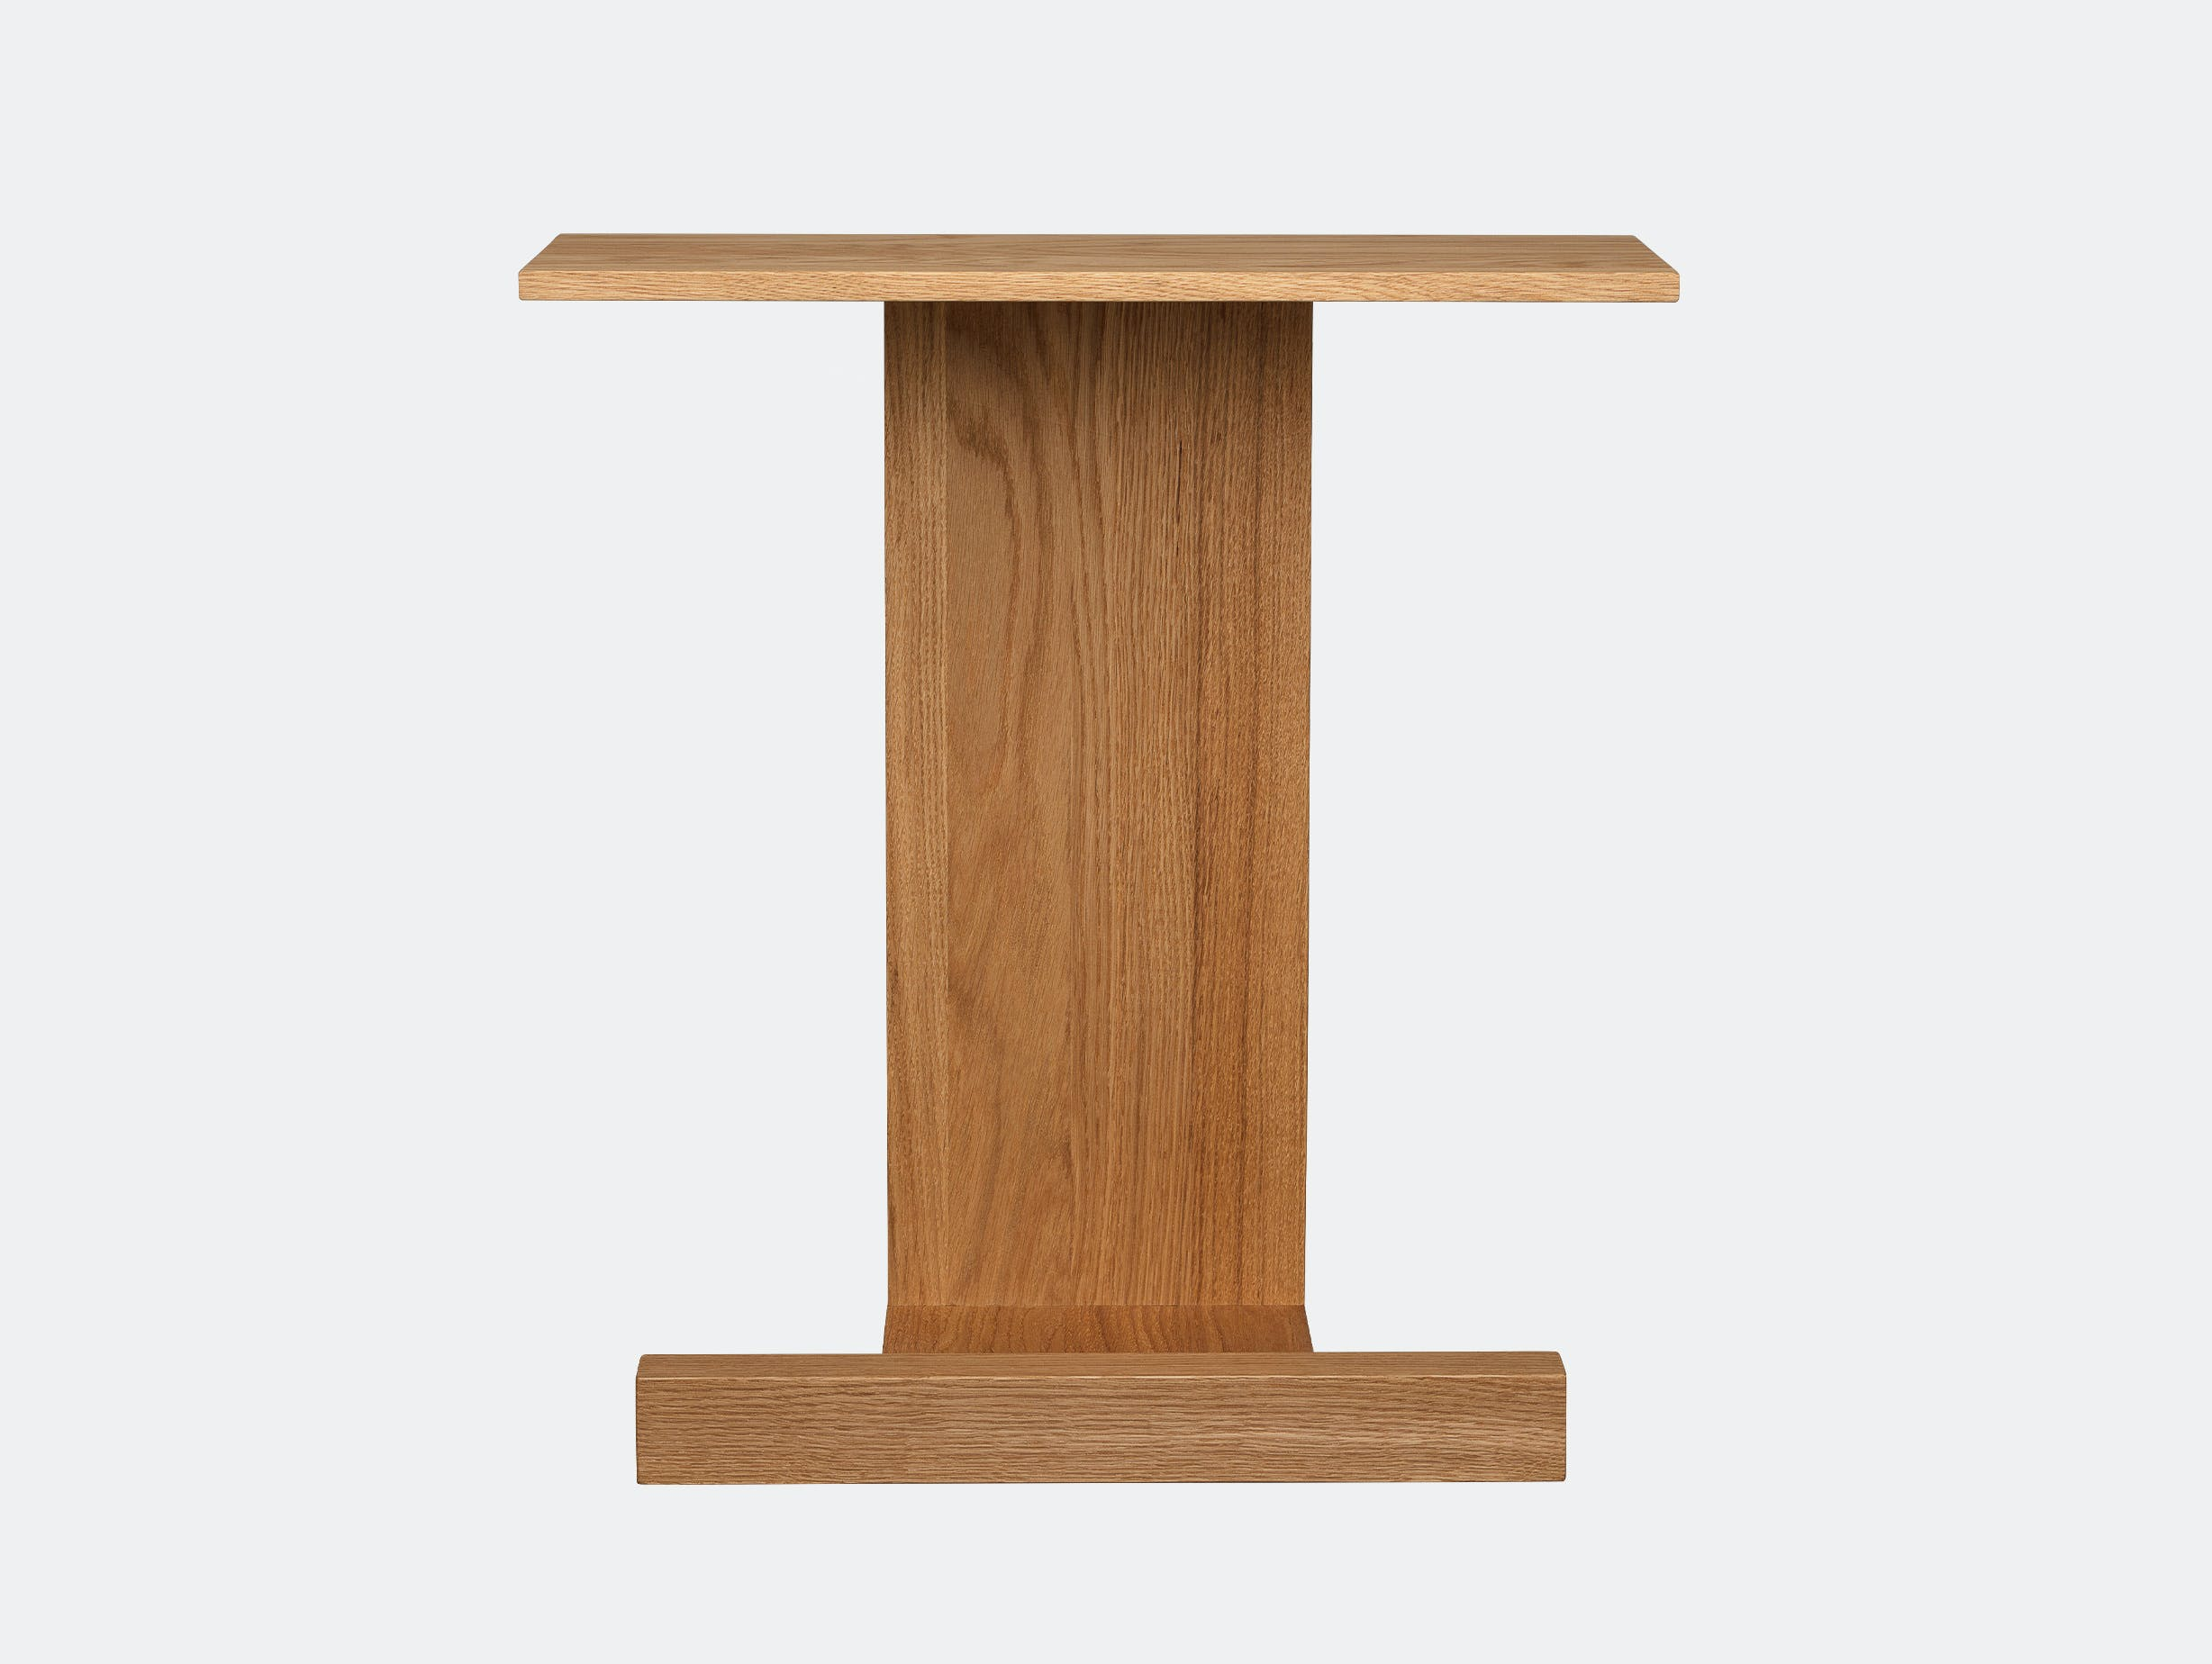 Fogia supersolid object 4 oak 2